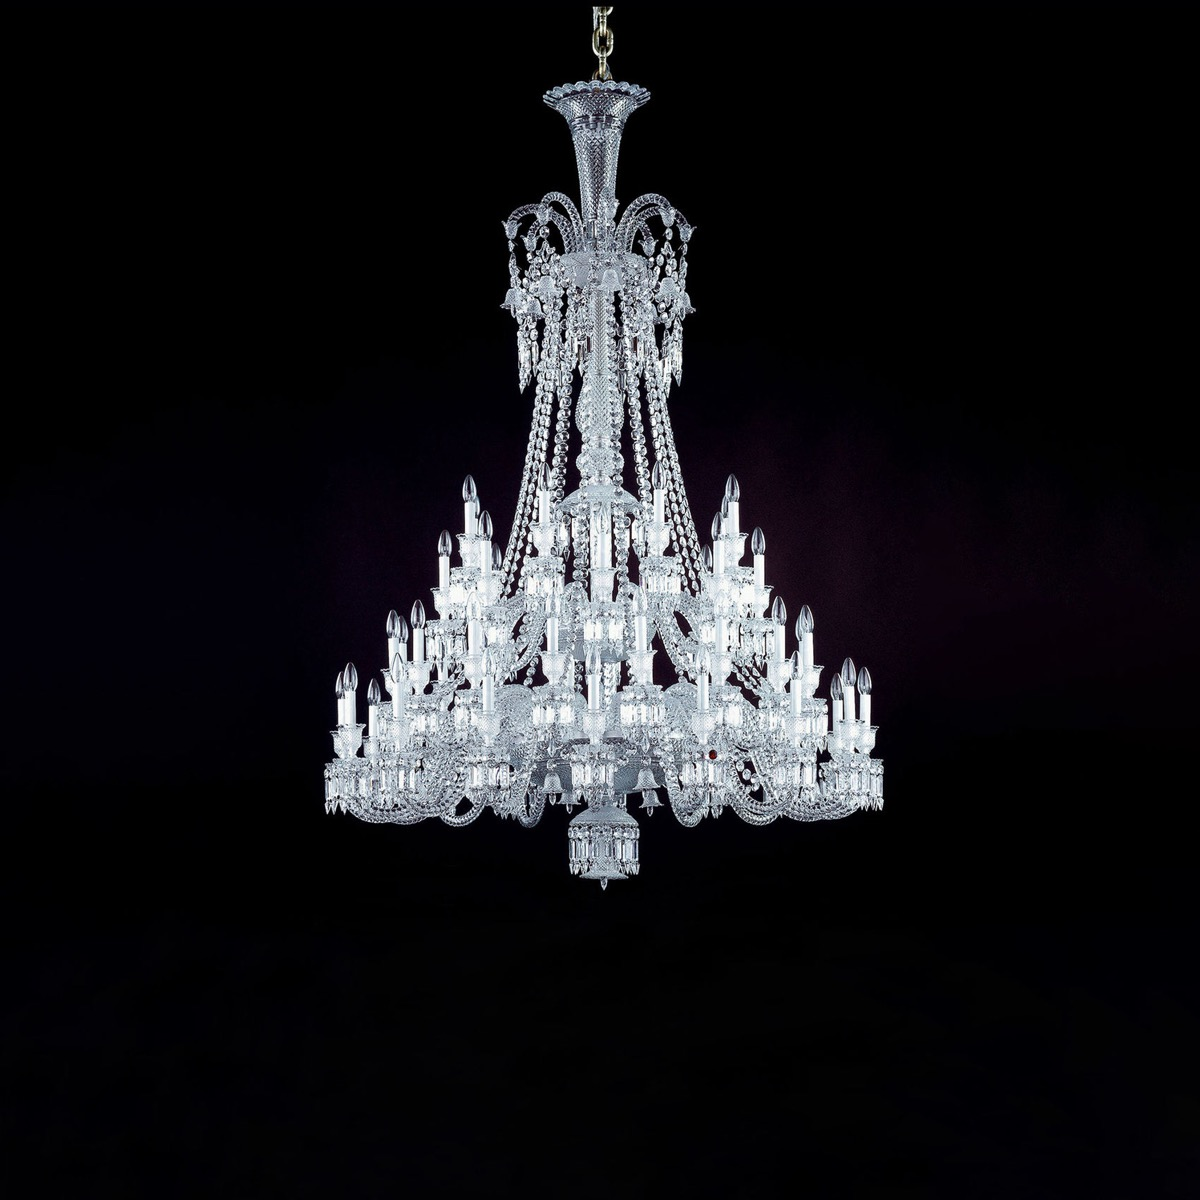 Baccarat Chandelier Most Expensive Things on the Planet